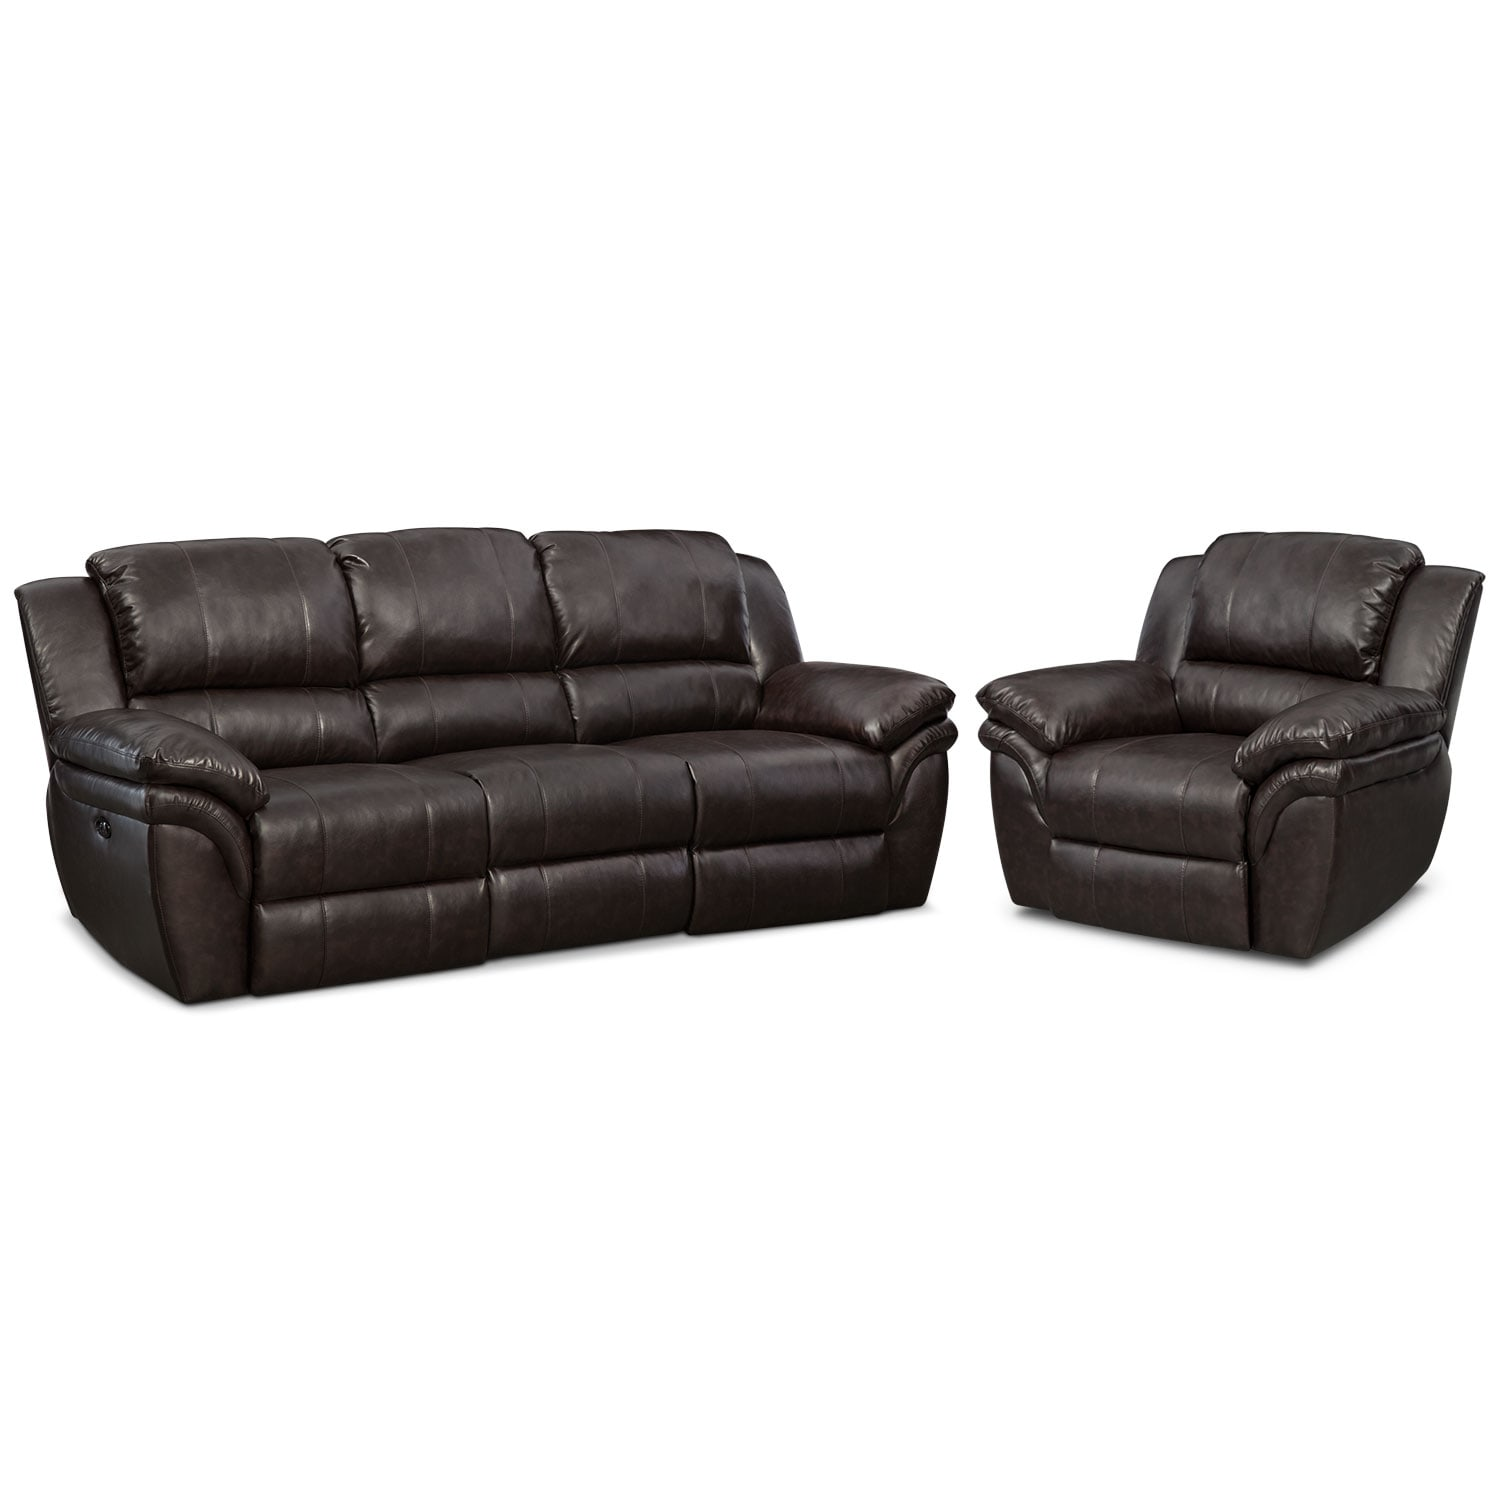 Living Room Furniture - Omni Brown 2 Pc. Power Reclining Living Room w/ Power Recliner